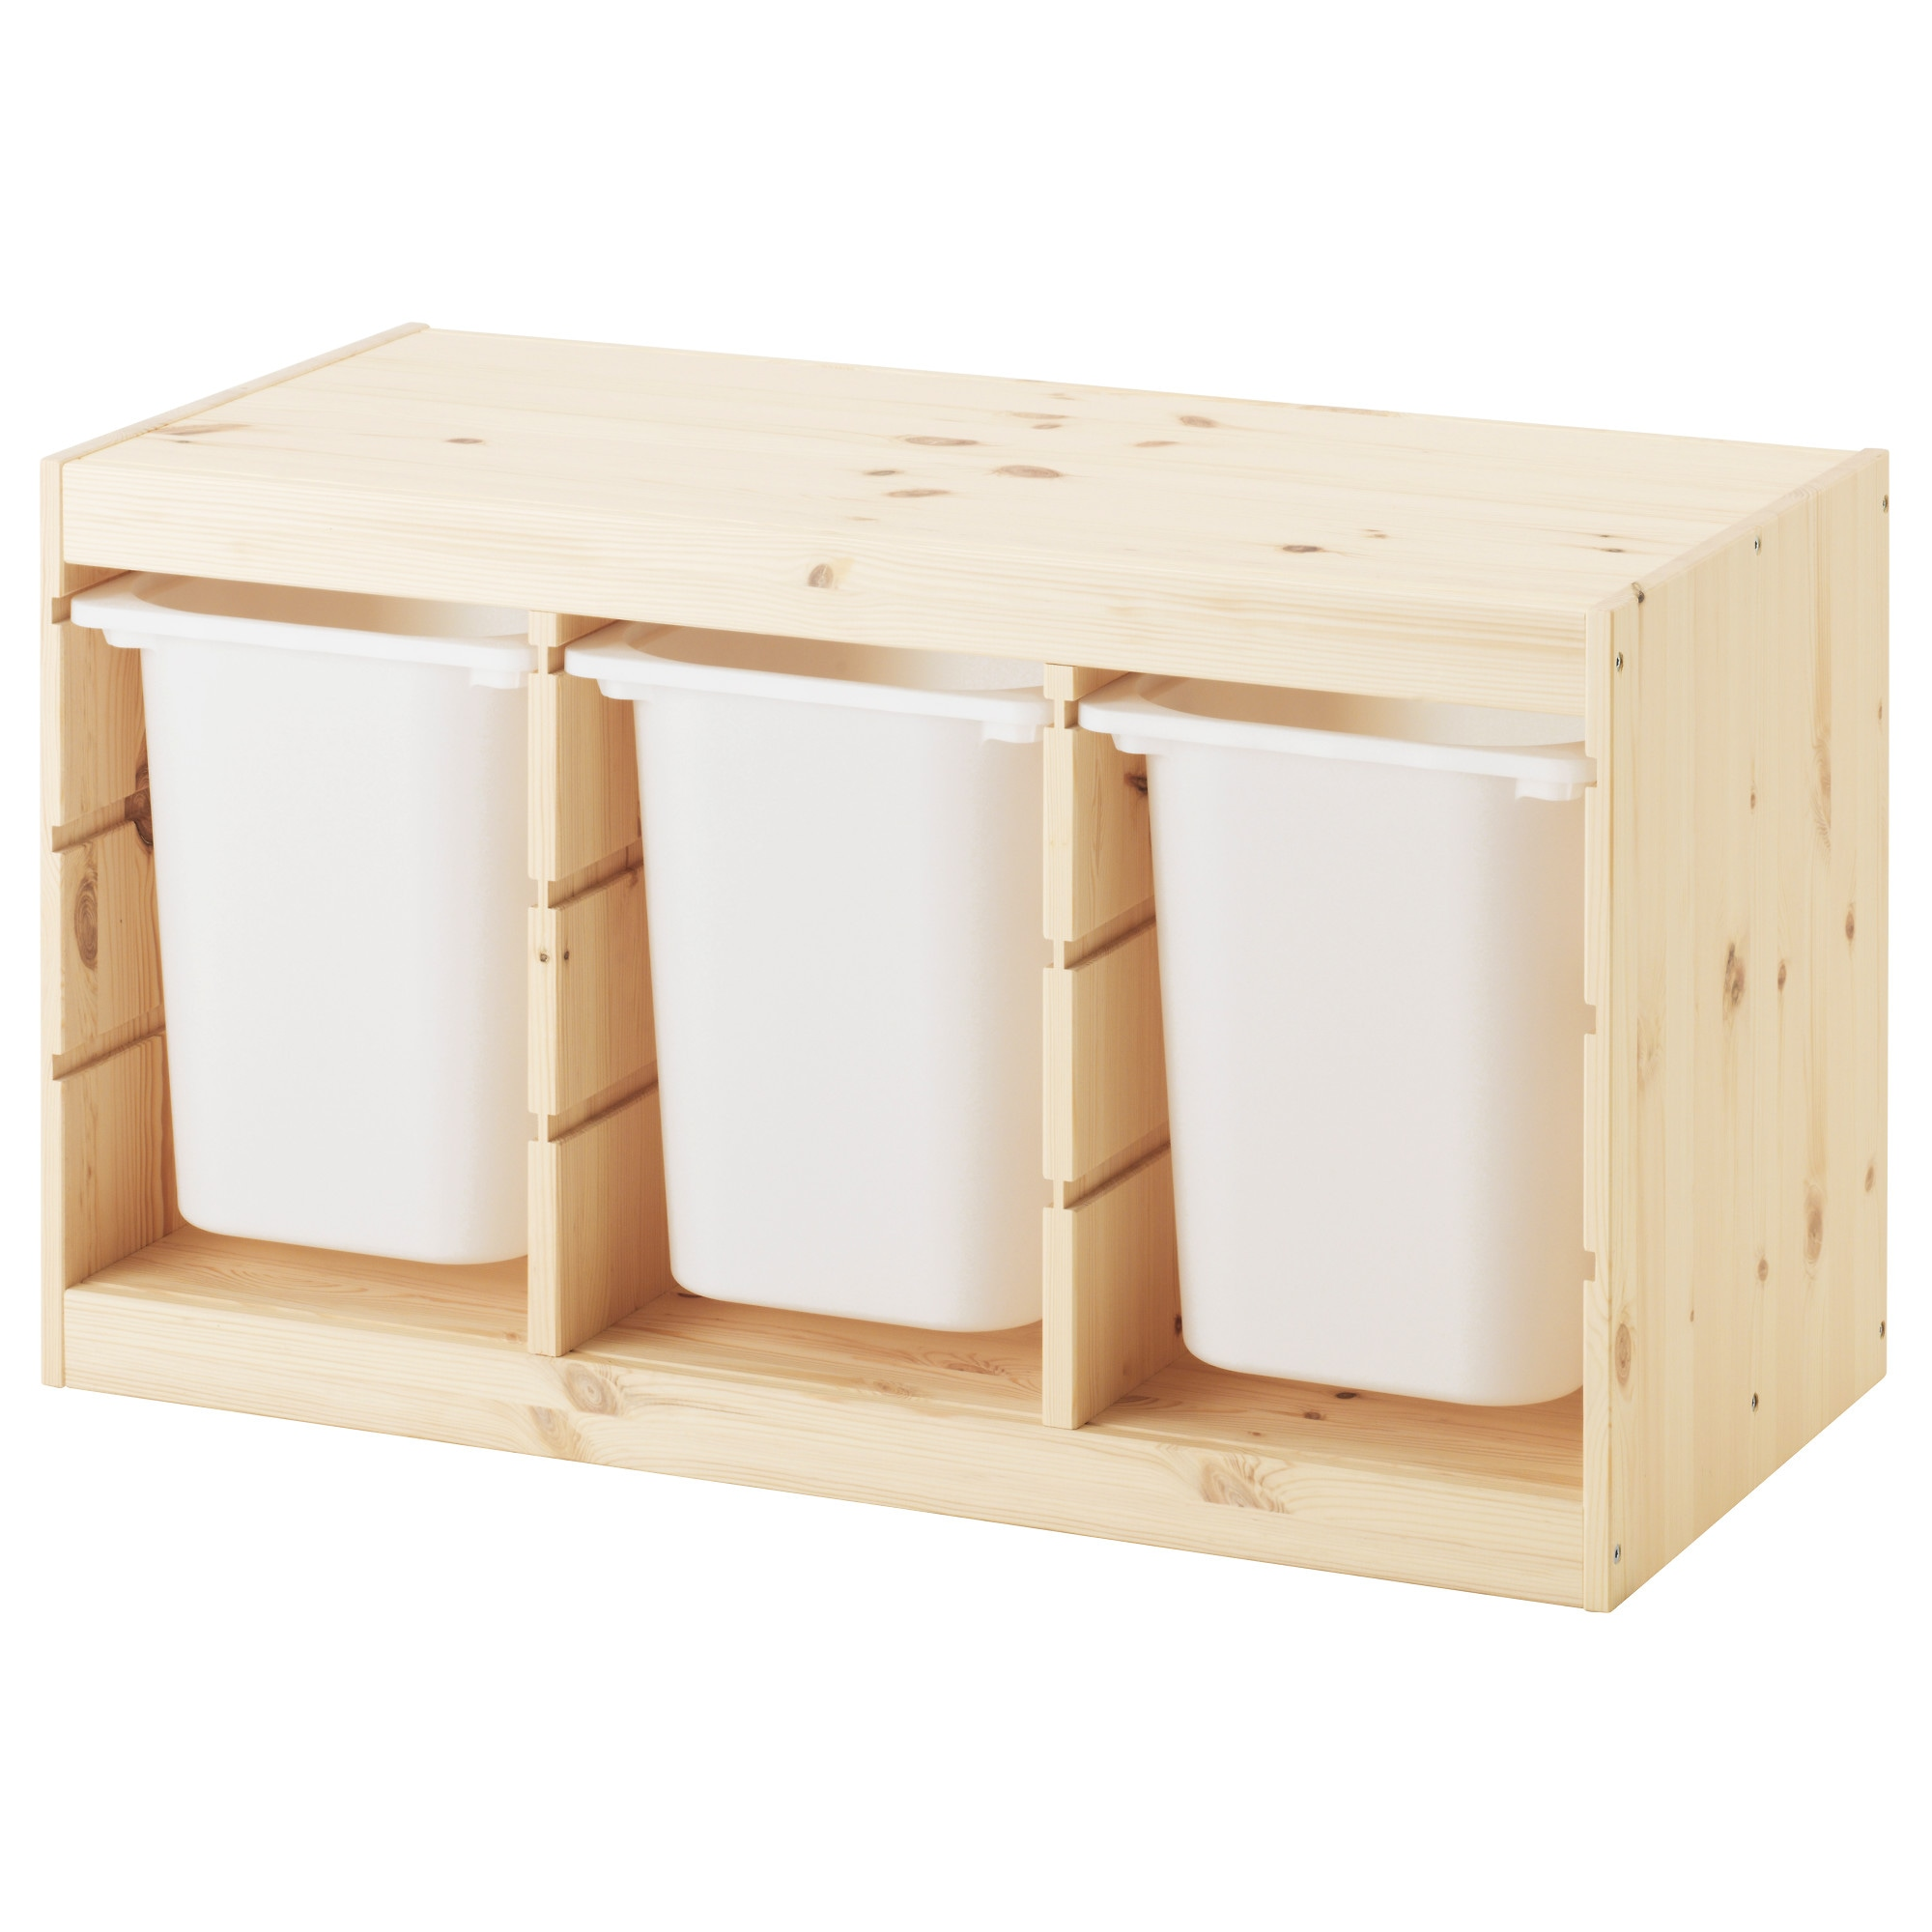 TROFAST Storage Combination With Boxes, Pine Light White Stained Pine,  White Width: 37